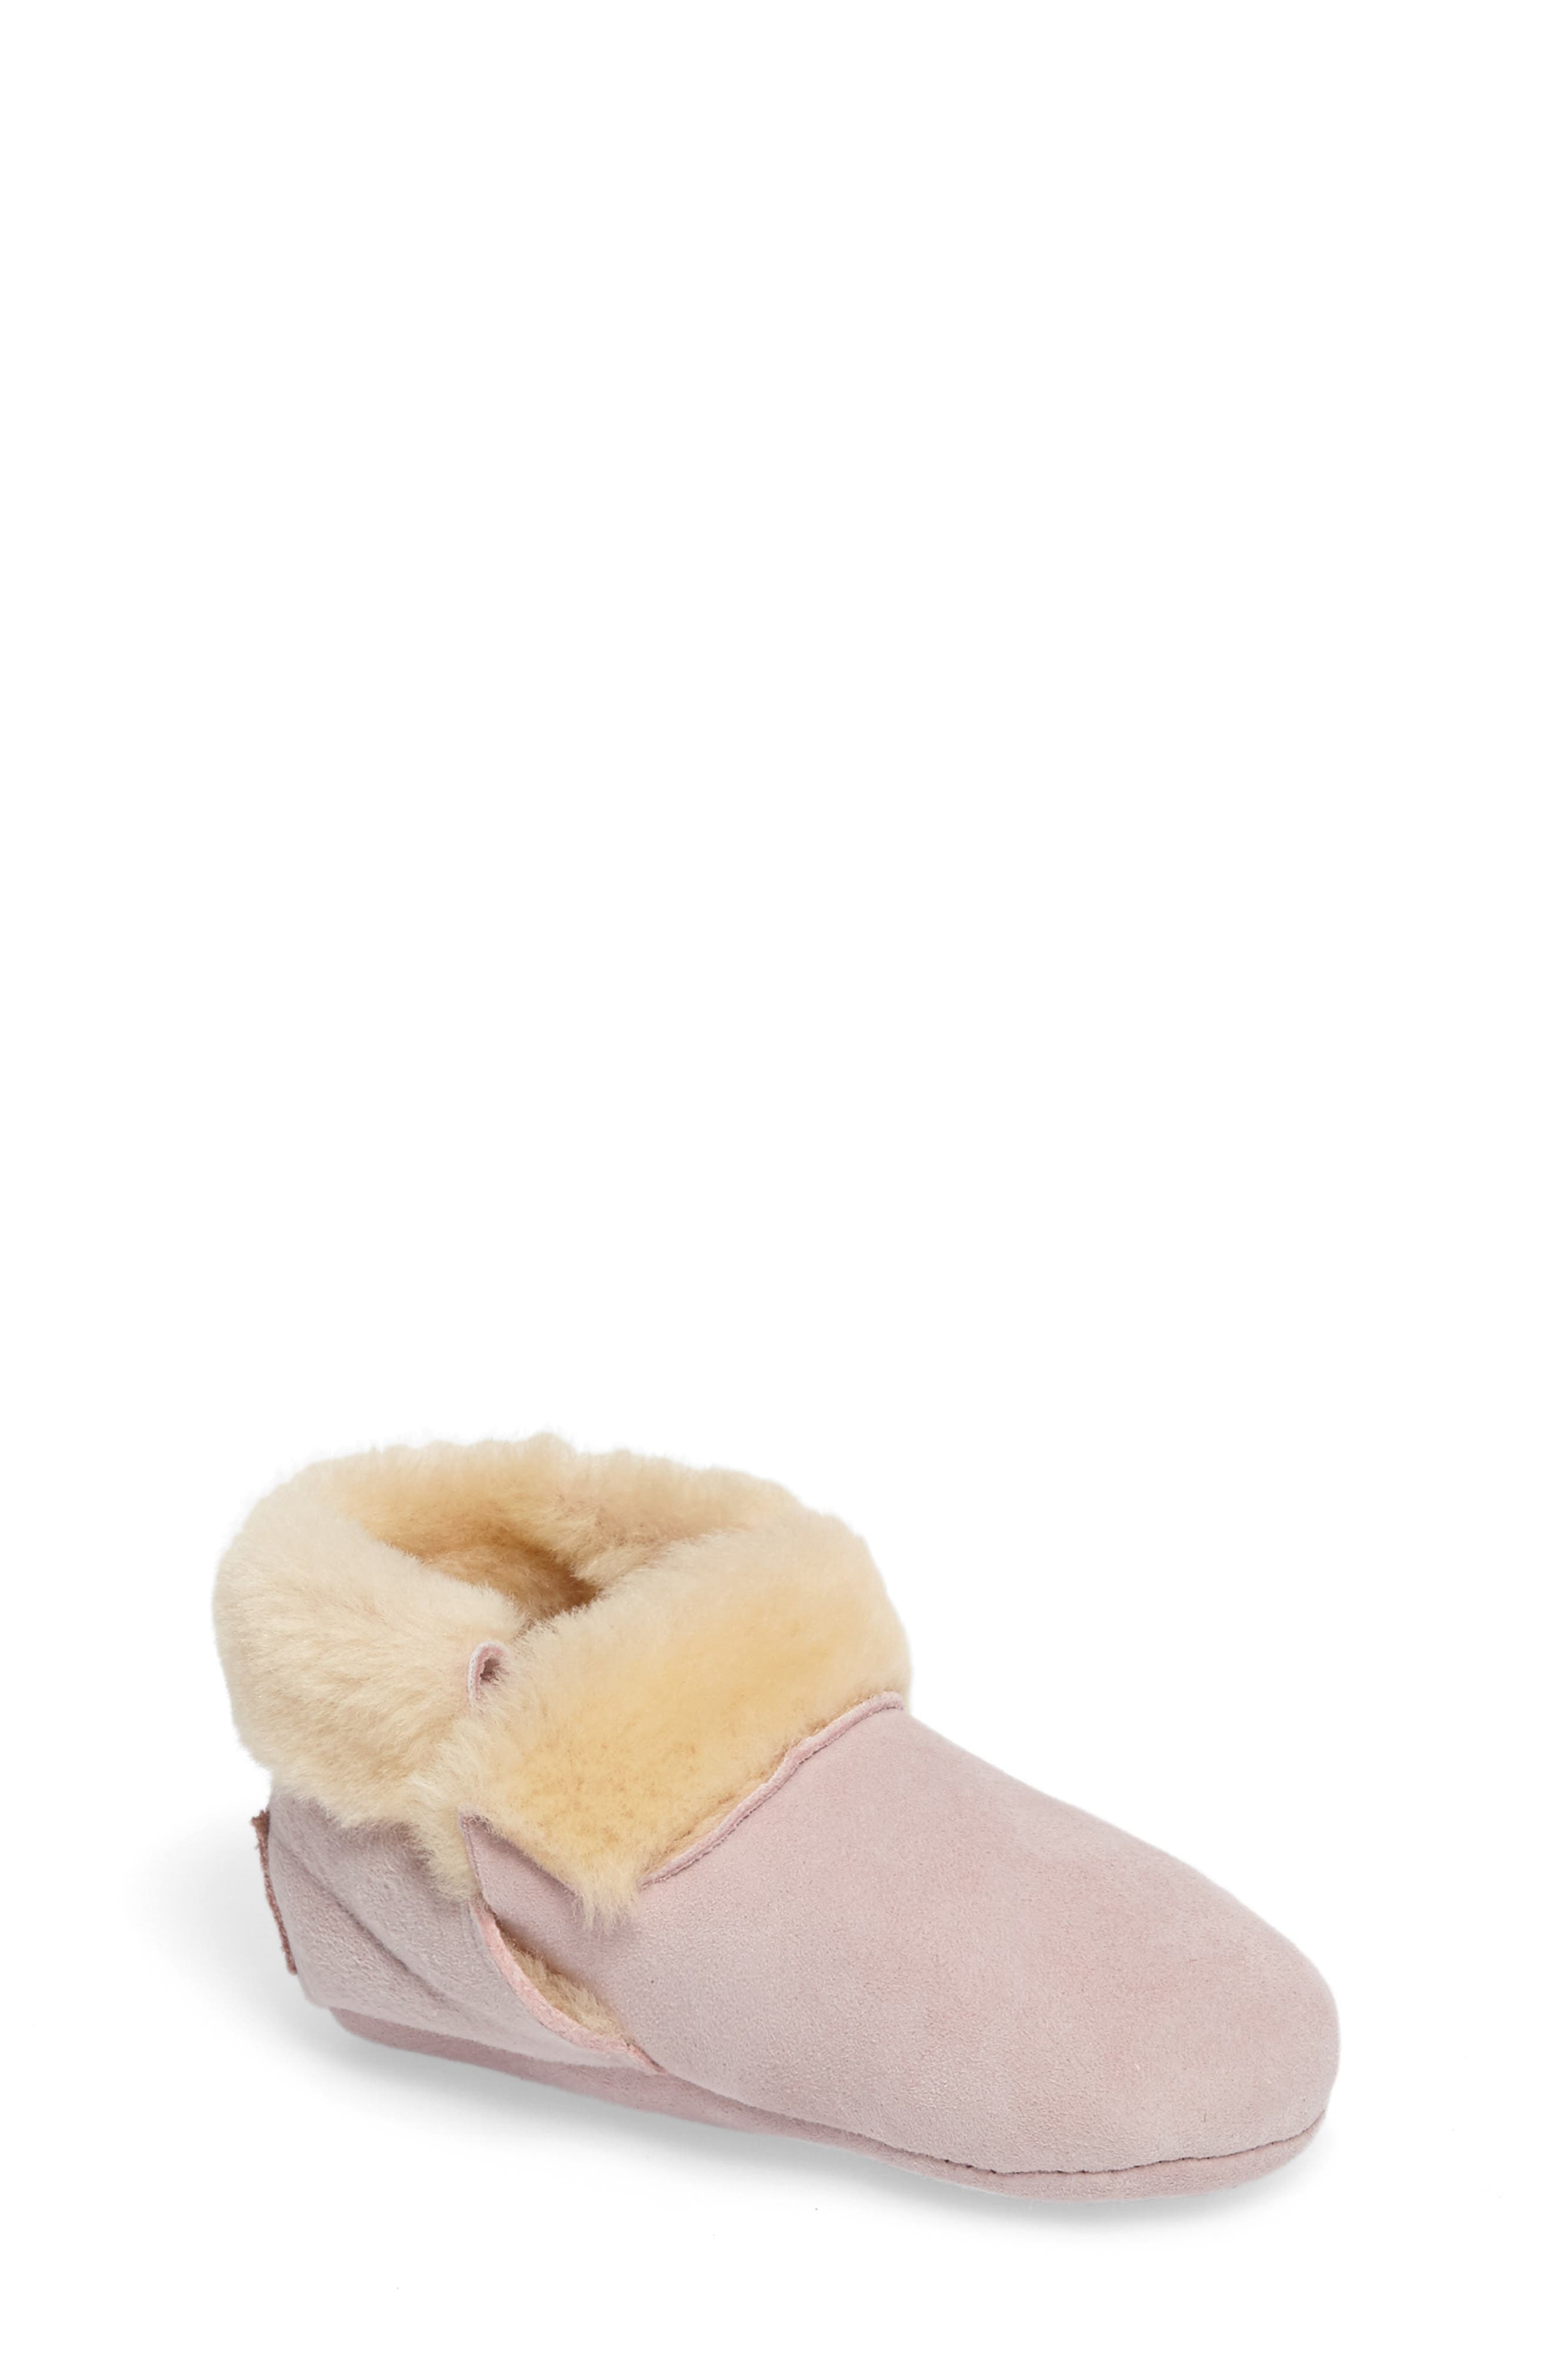 Solvi Genuine Shearling Low Cuffed Bootie,                             Main thumbnail 1, color,                             BABY PINK